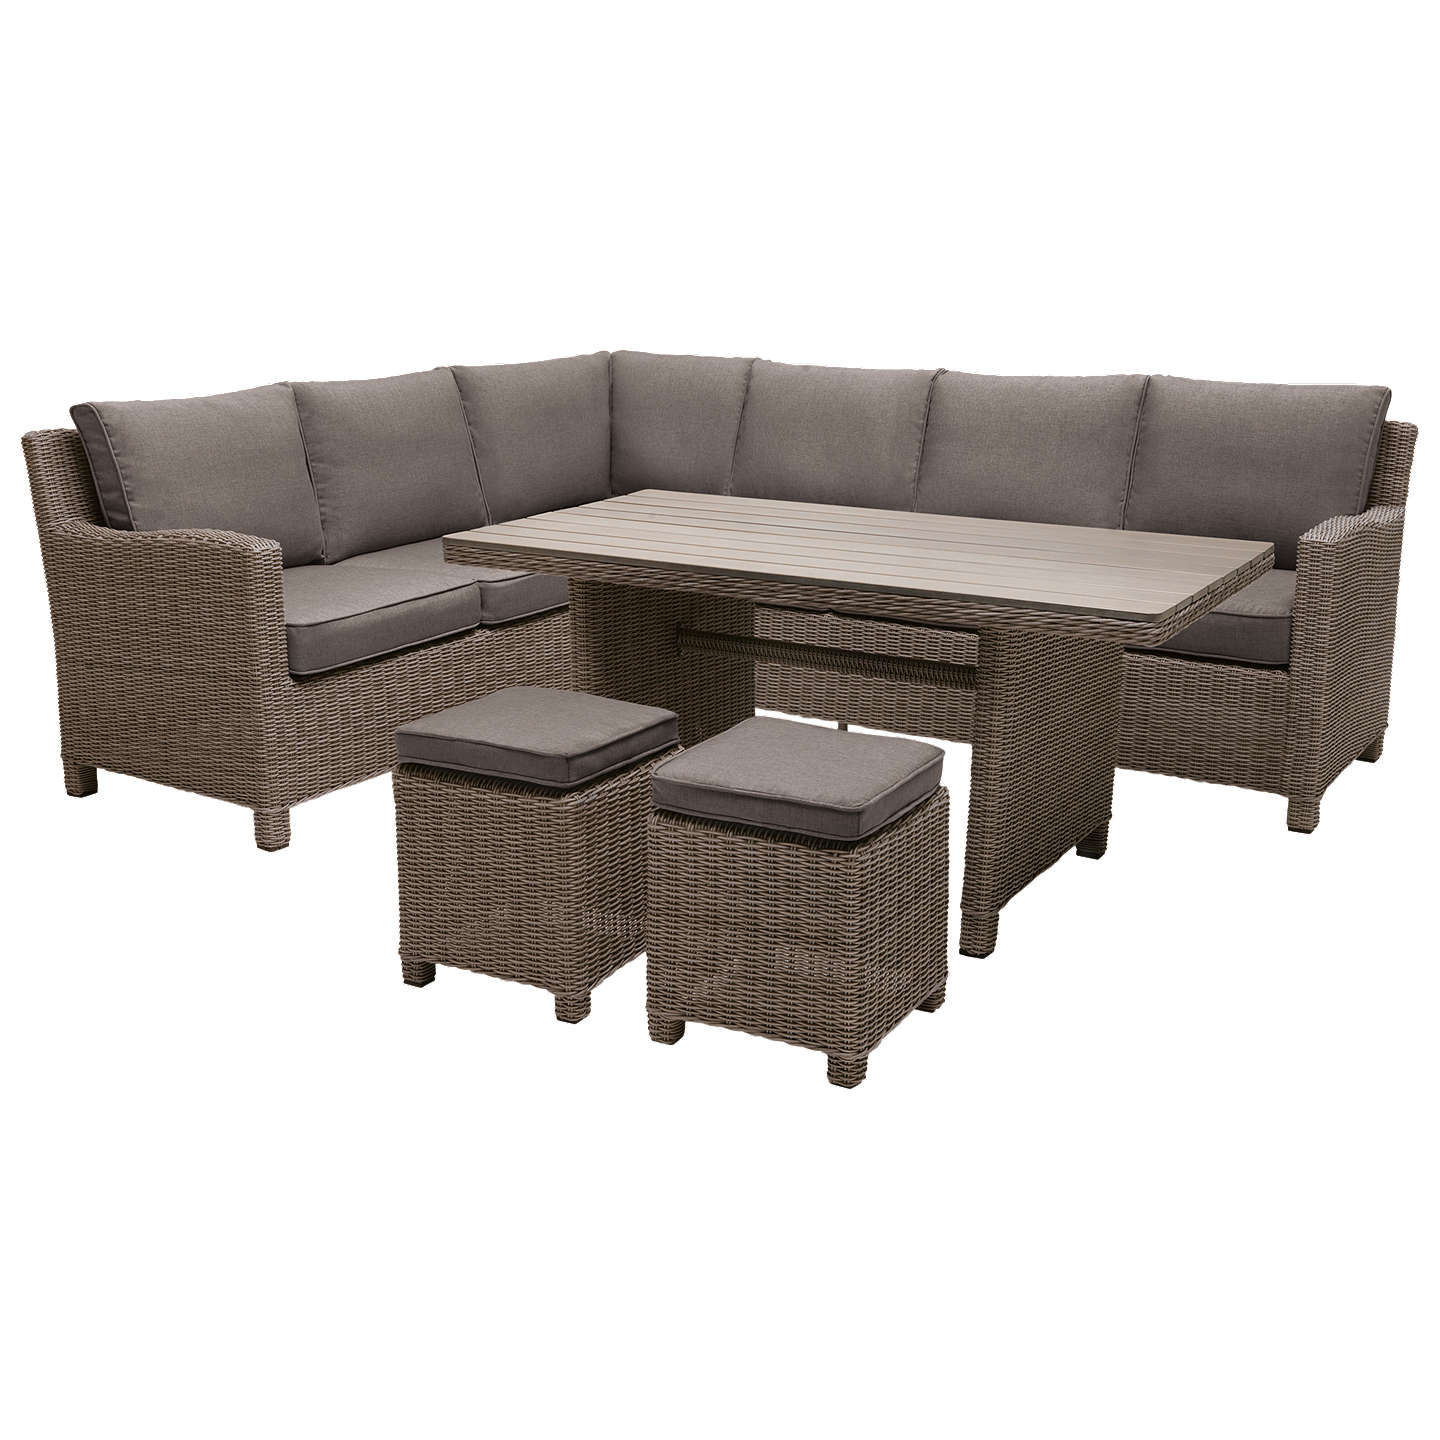 Garden Table And Chairs Set John Lewis: KETTLER Palma 8 Seater Garden Corner Lounging Table And